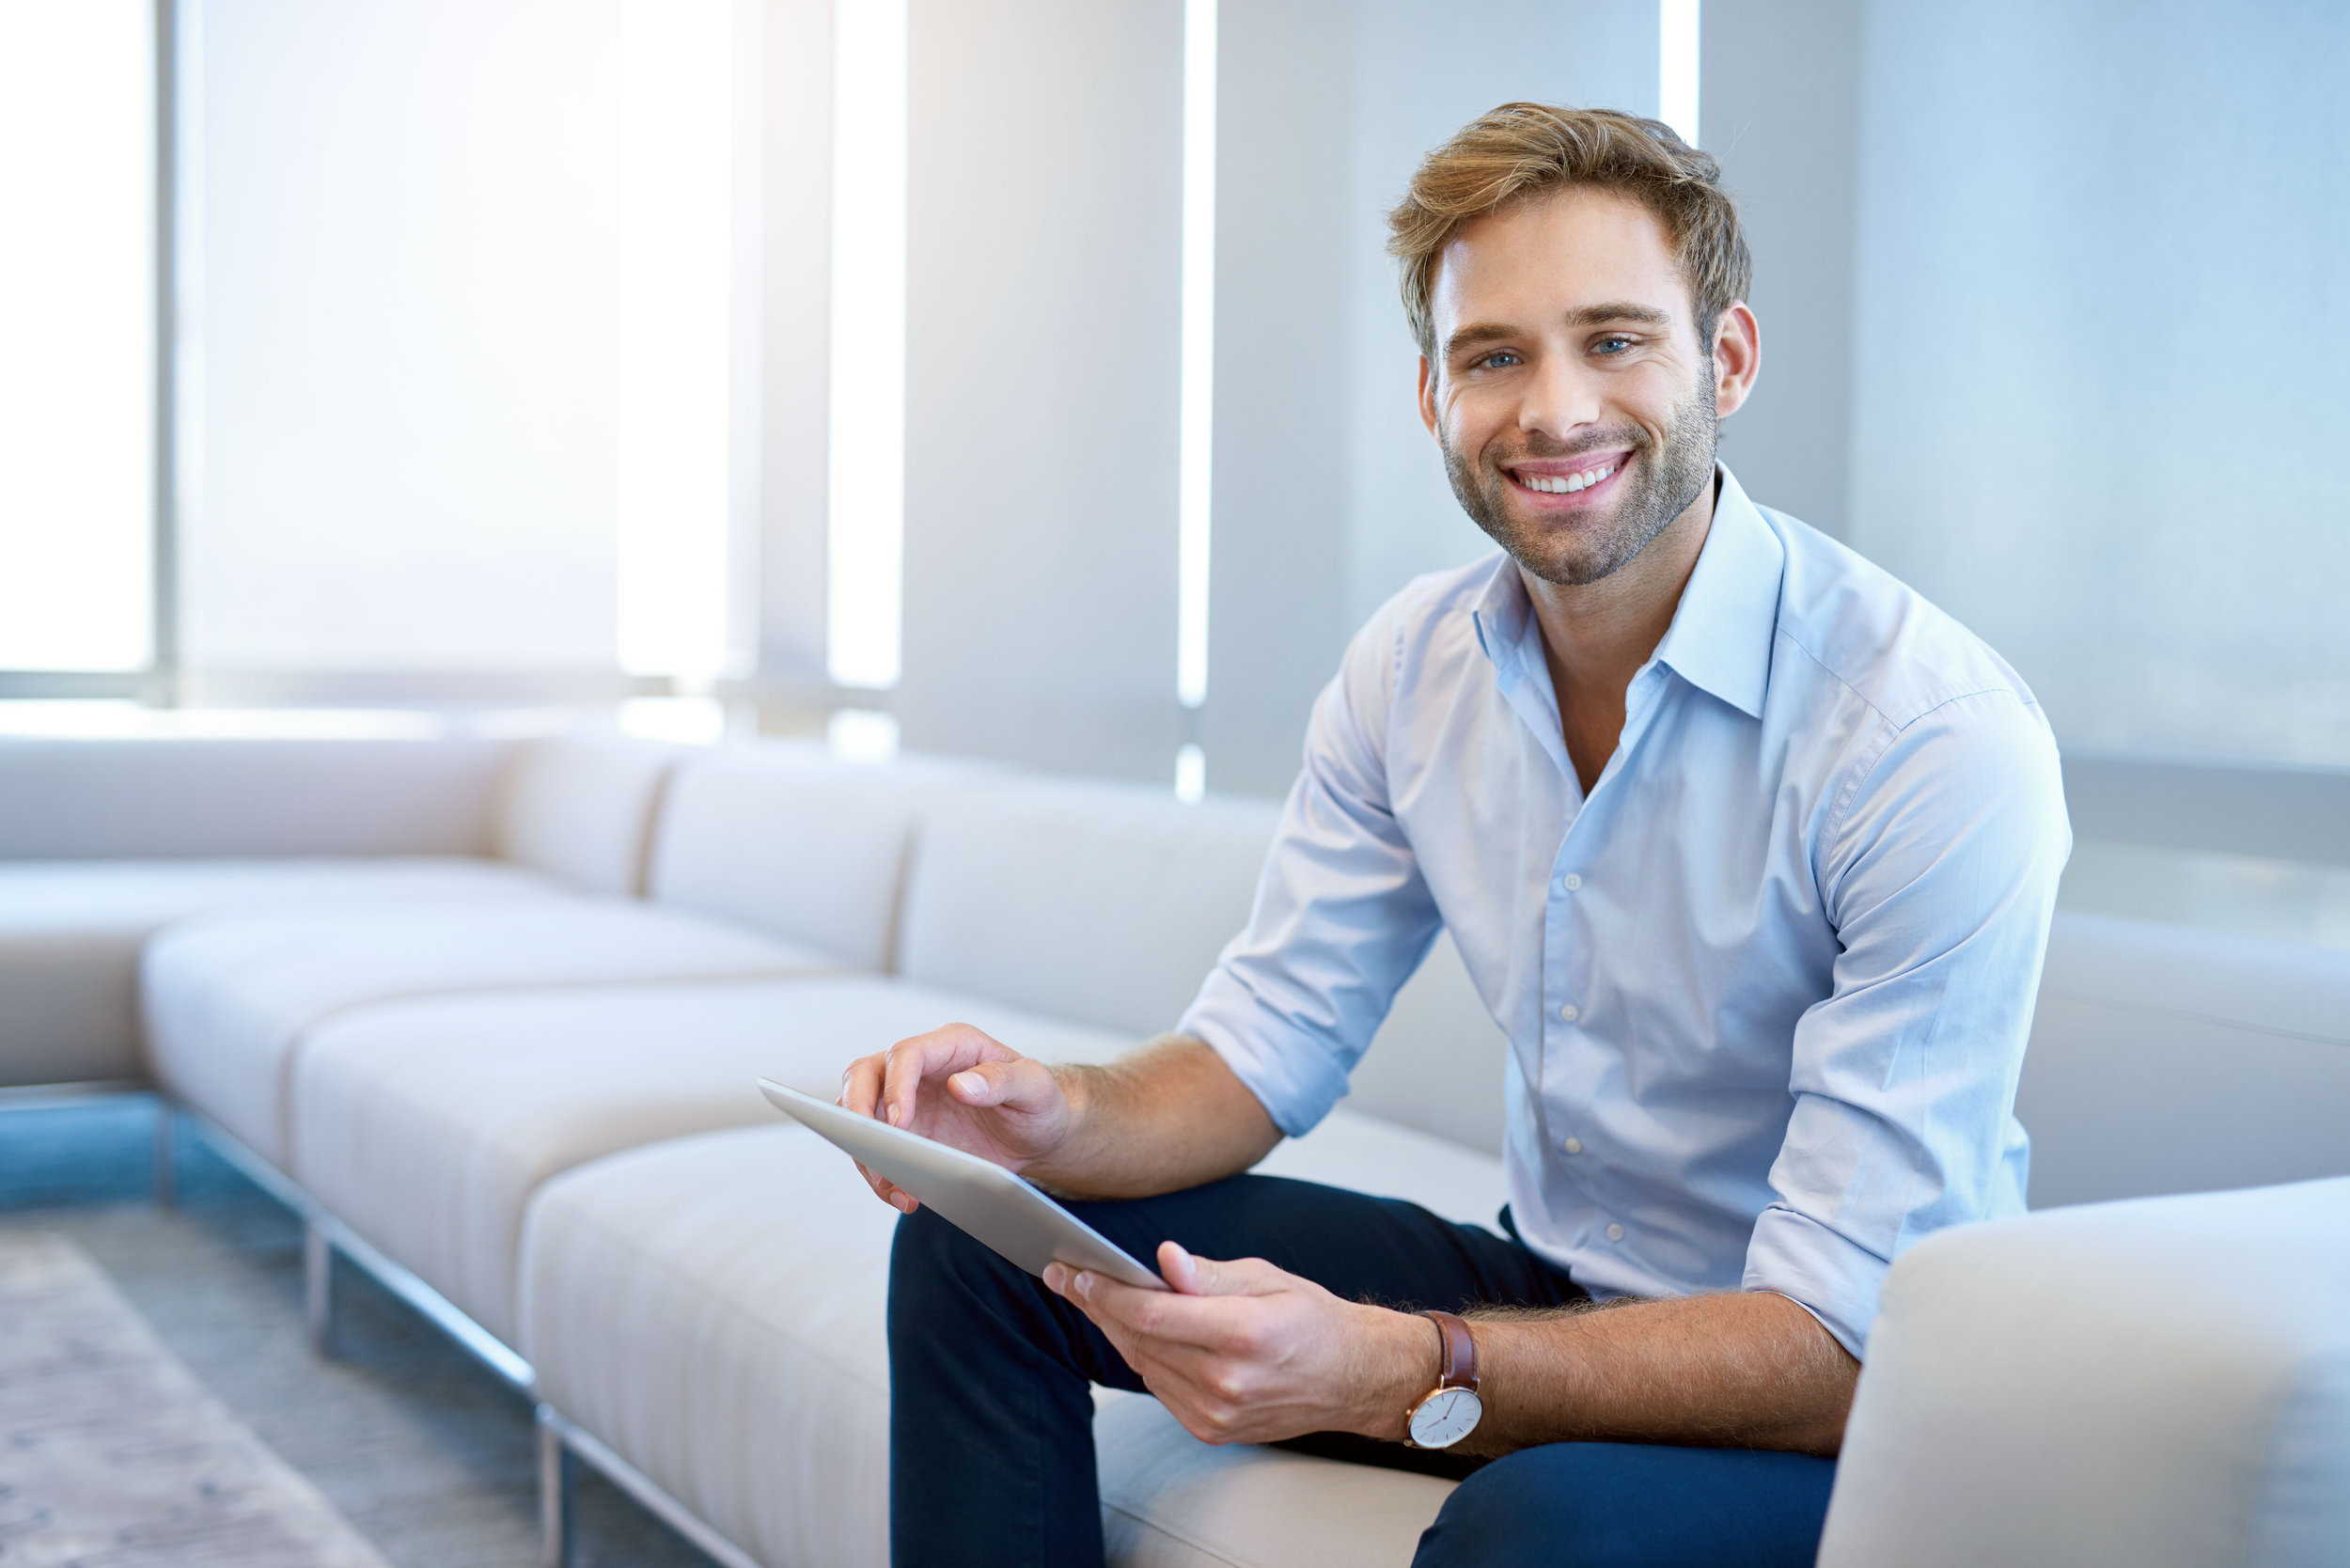 Business man with tablet on couch, men's skin care routine for business man